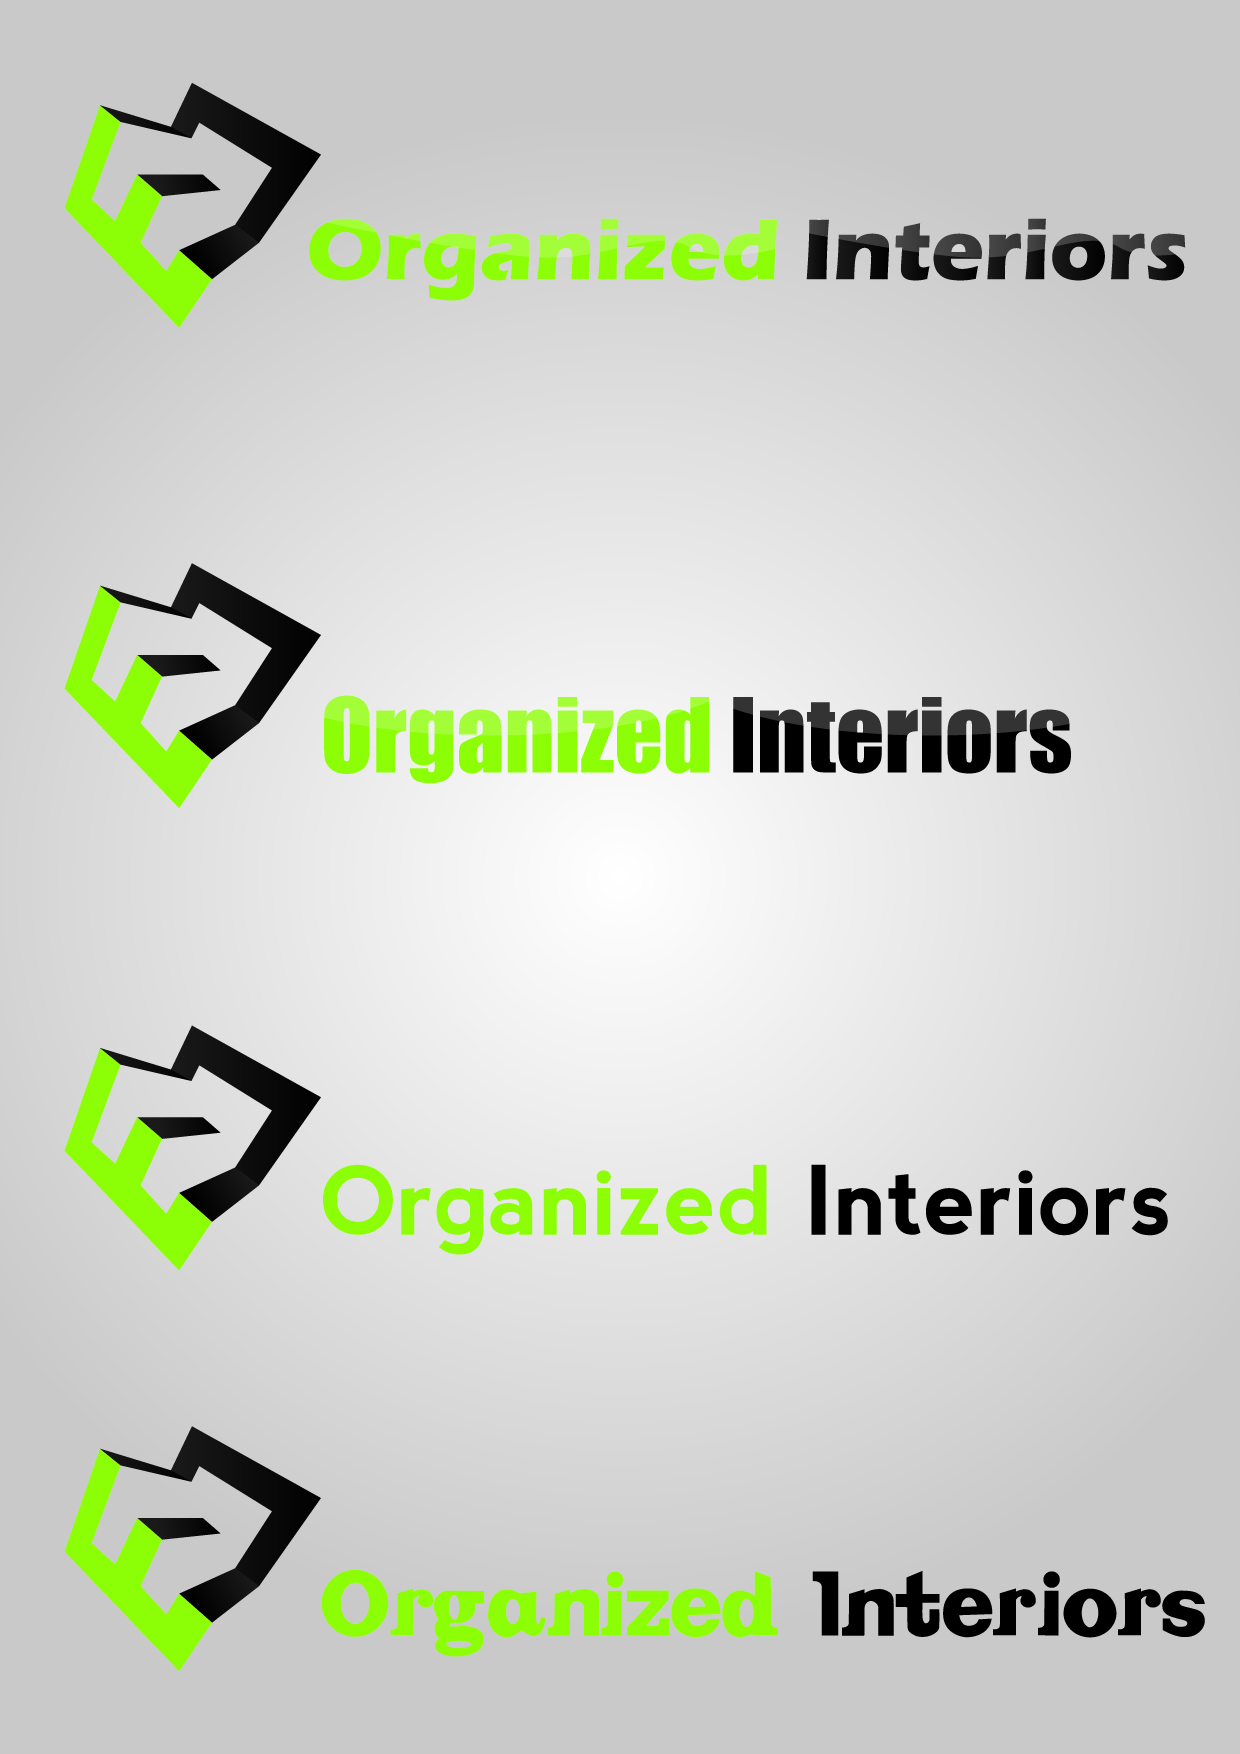 Logo Design by mediaproductionart - Entry No. 81 in the Logo Design Contest Imaginative Logo Design for Organized Interiors.